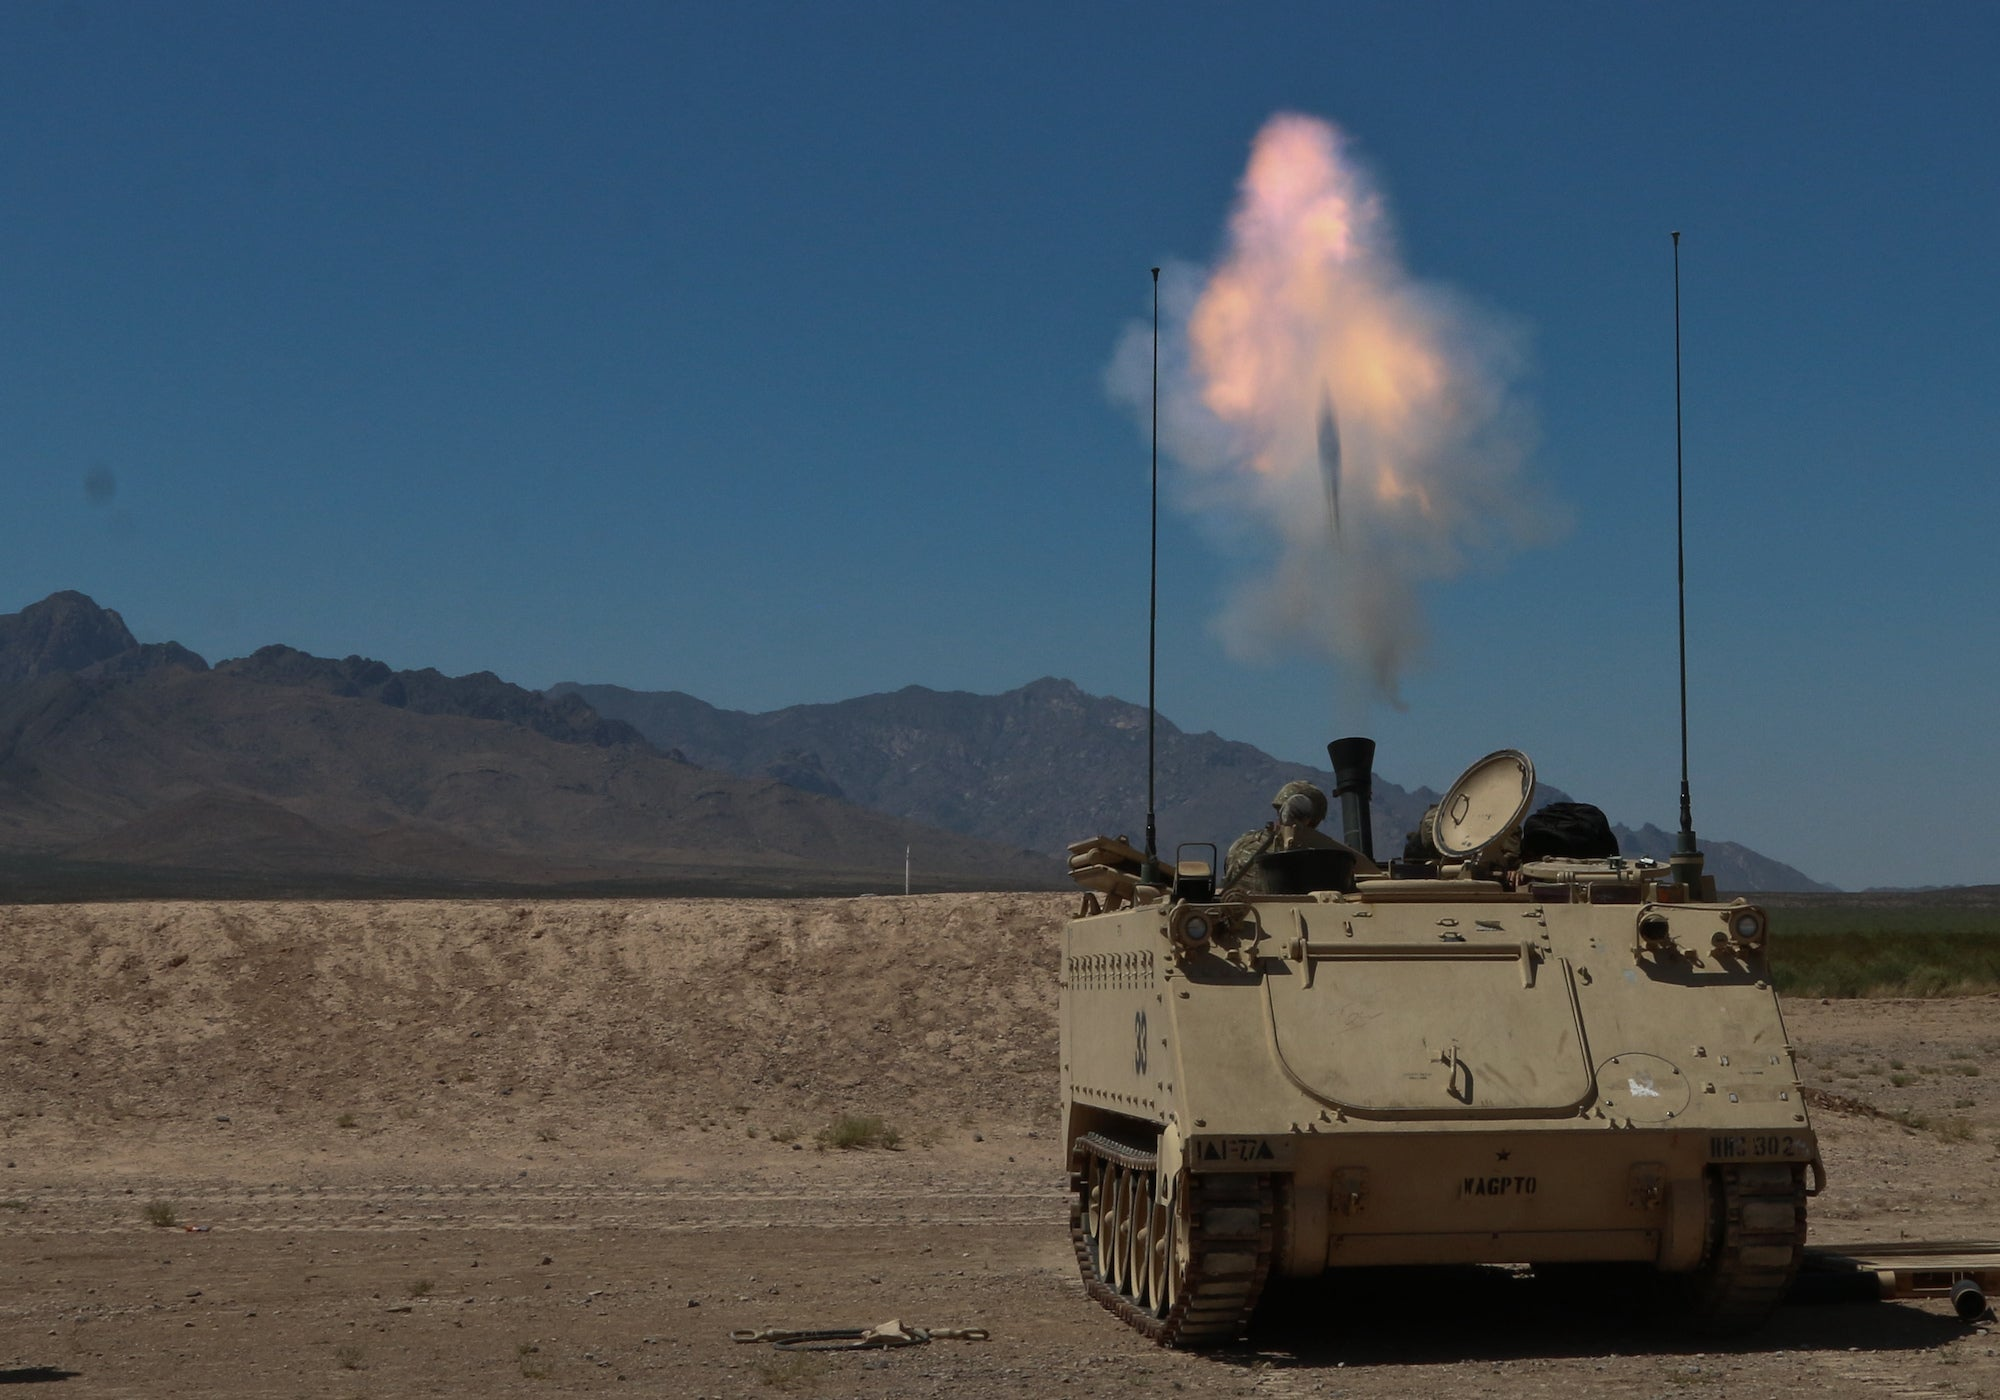 A 120mm mortar fires from a military vehicle.